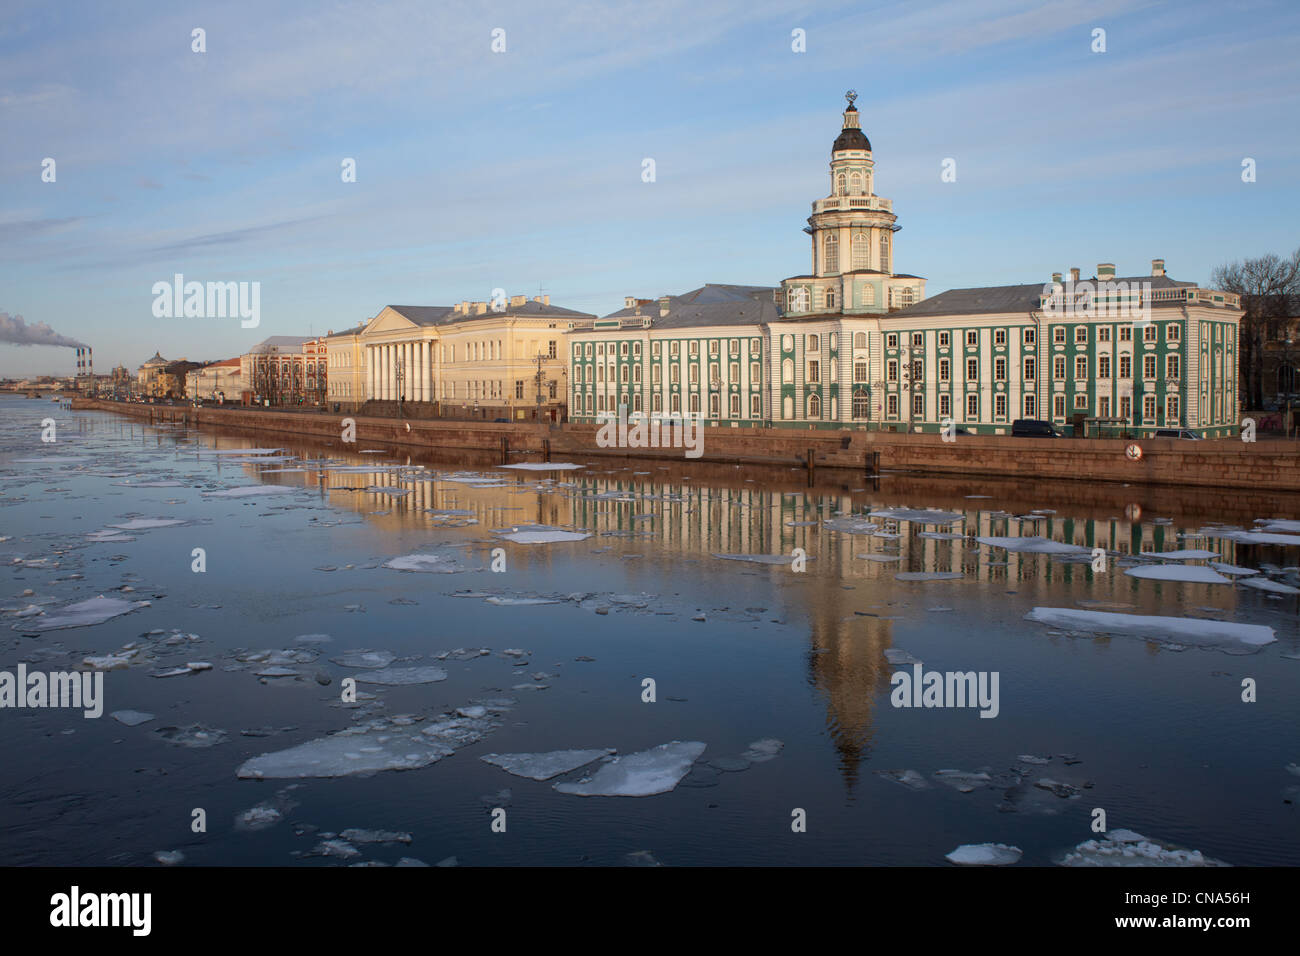 The Kunstkamera and Saint Petersburg Scientific Center of the Russian Academy of Sciences, St. Petersburg, Russia. - Stock Image